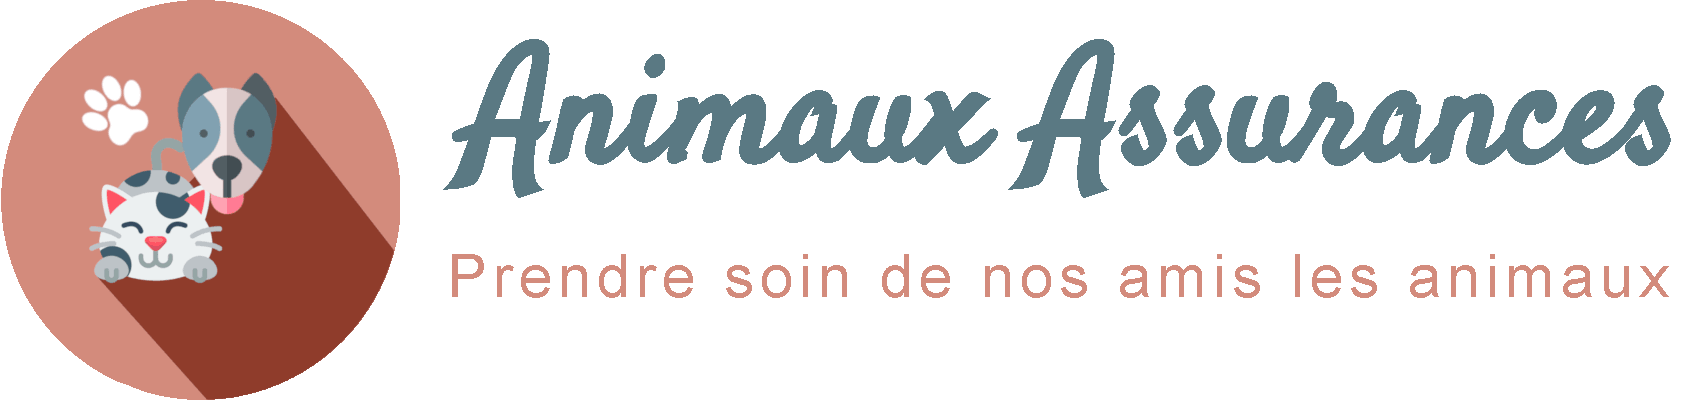 cropped logo animaux assurances 2.png